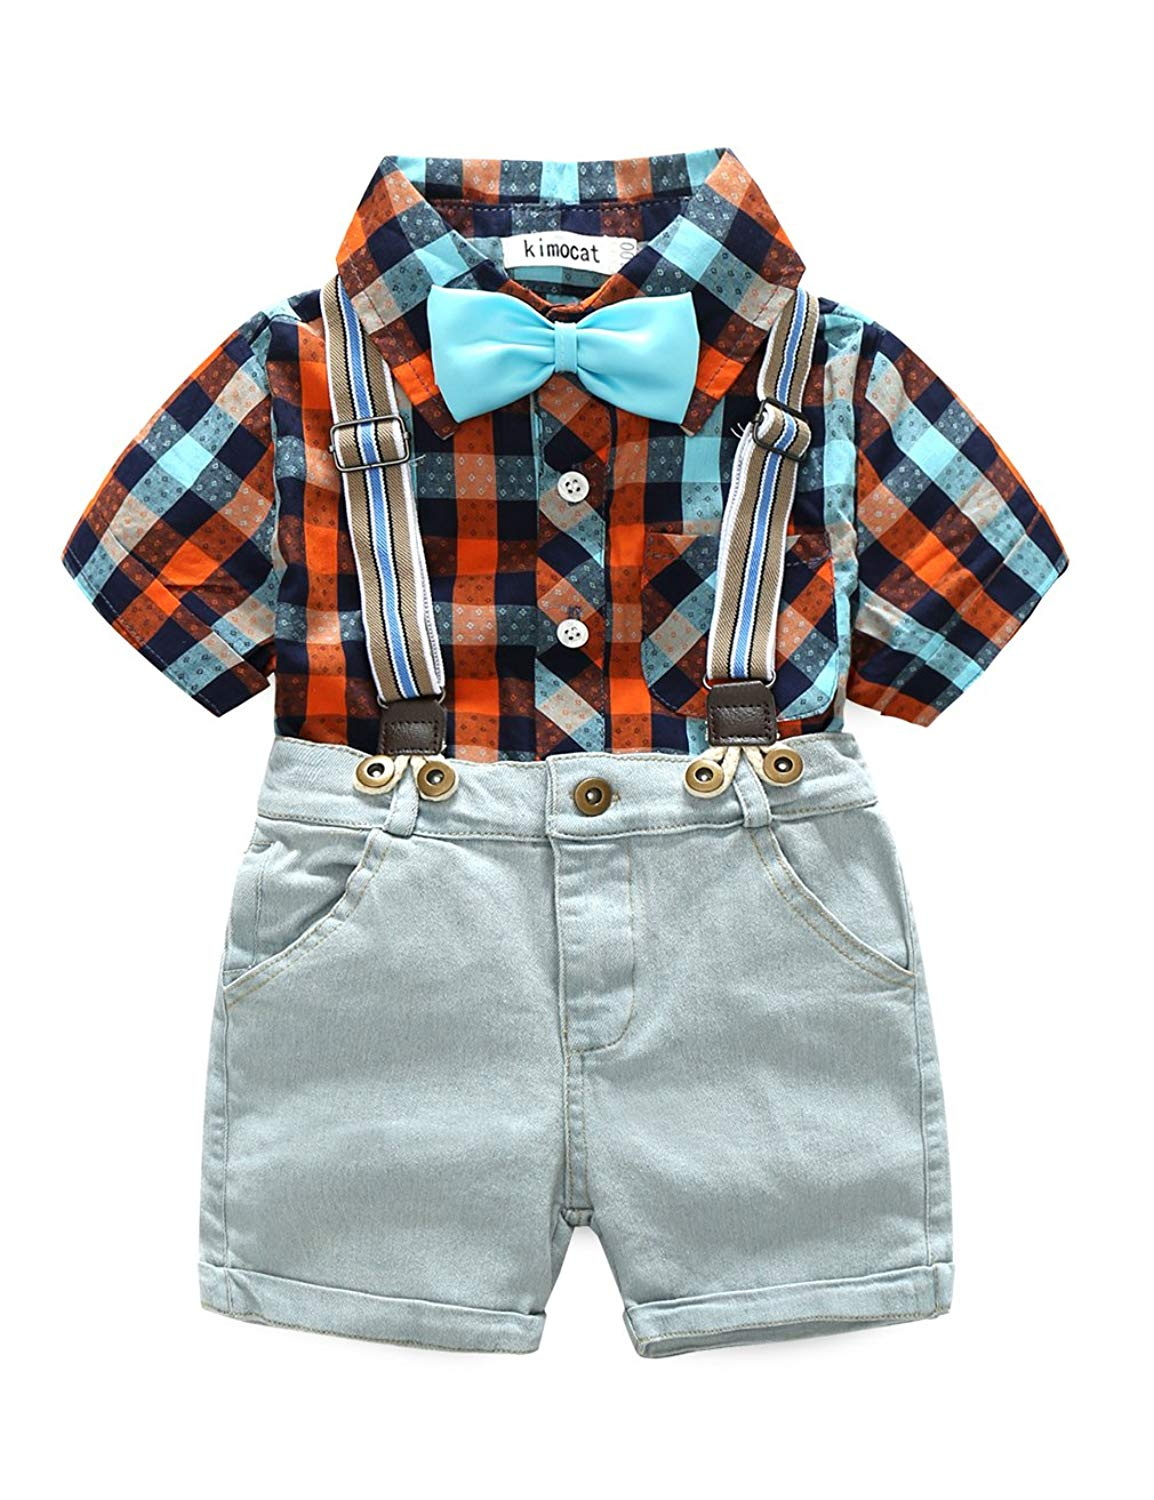 315a9260 Get Quotations · Aidio Baby Boys Overalls Bow Tie Plaid Short Sleeve Shirt  Denim Jeans Shorts Pants